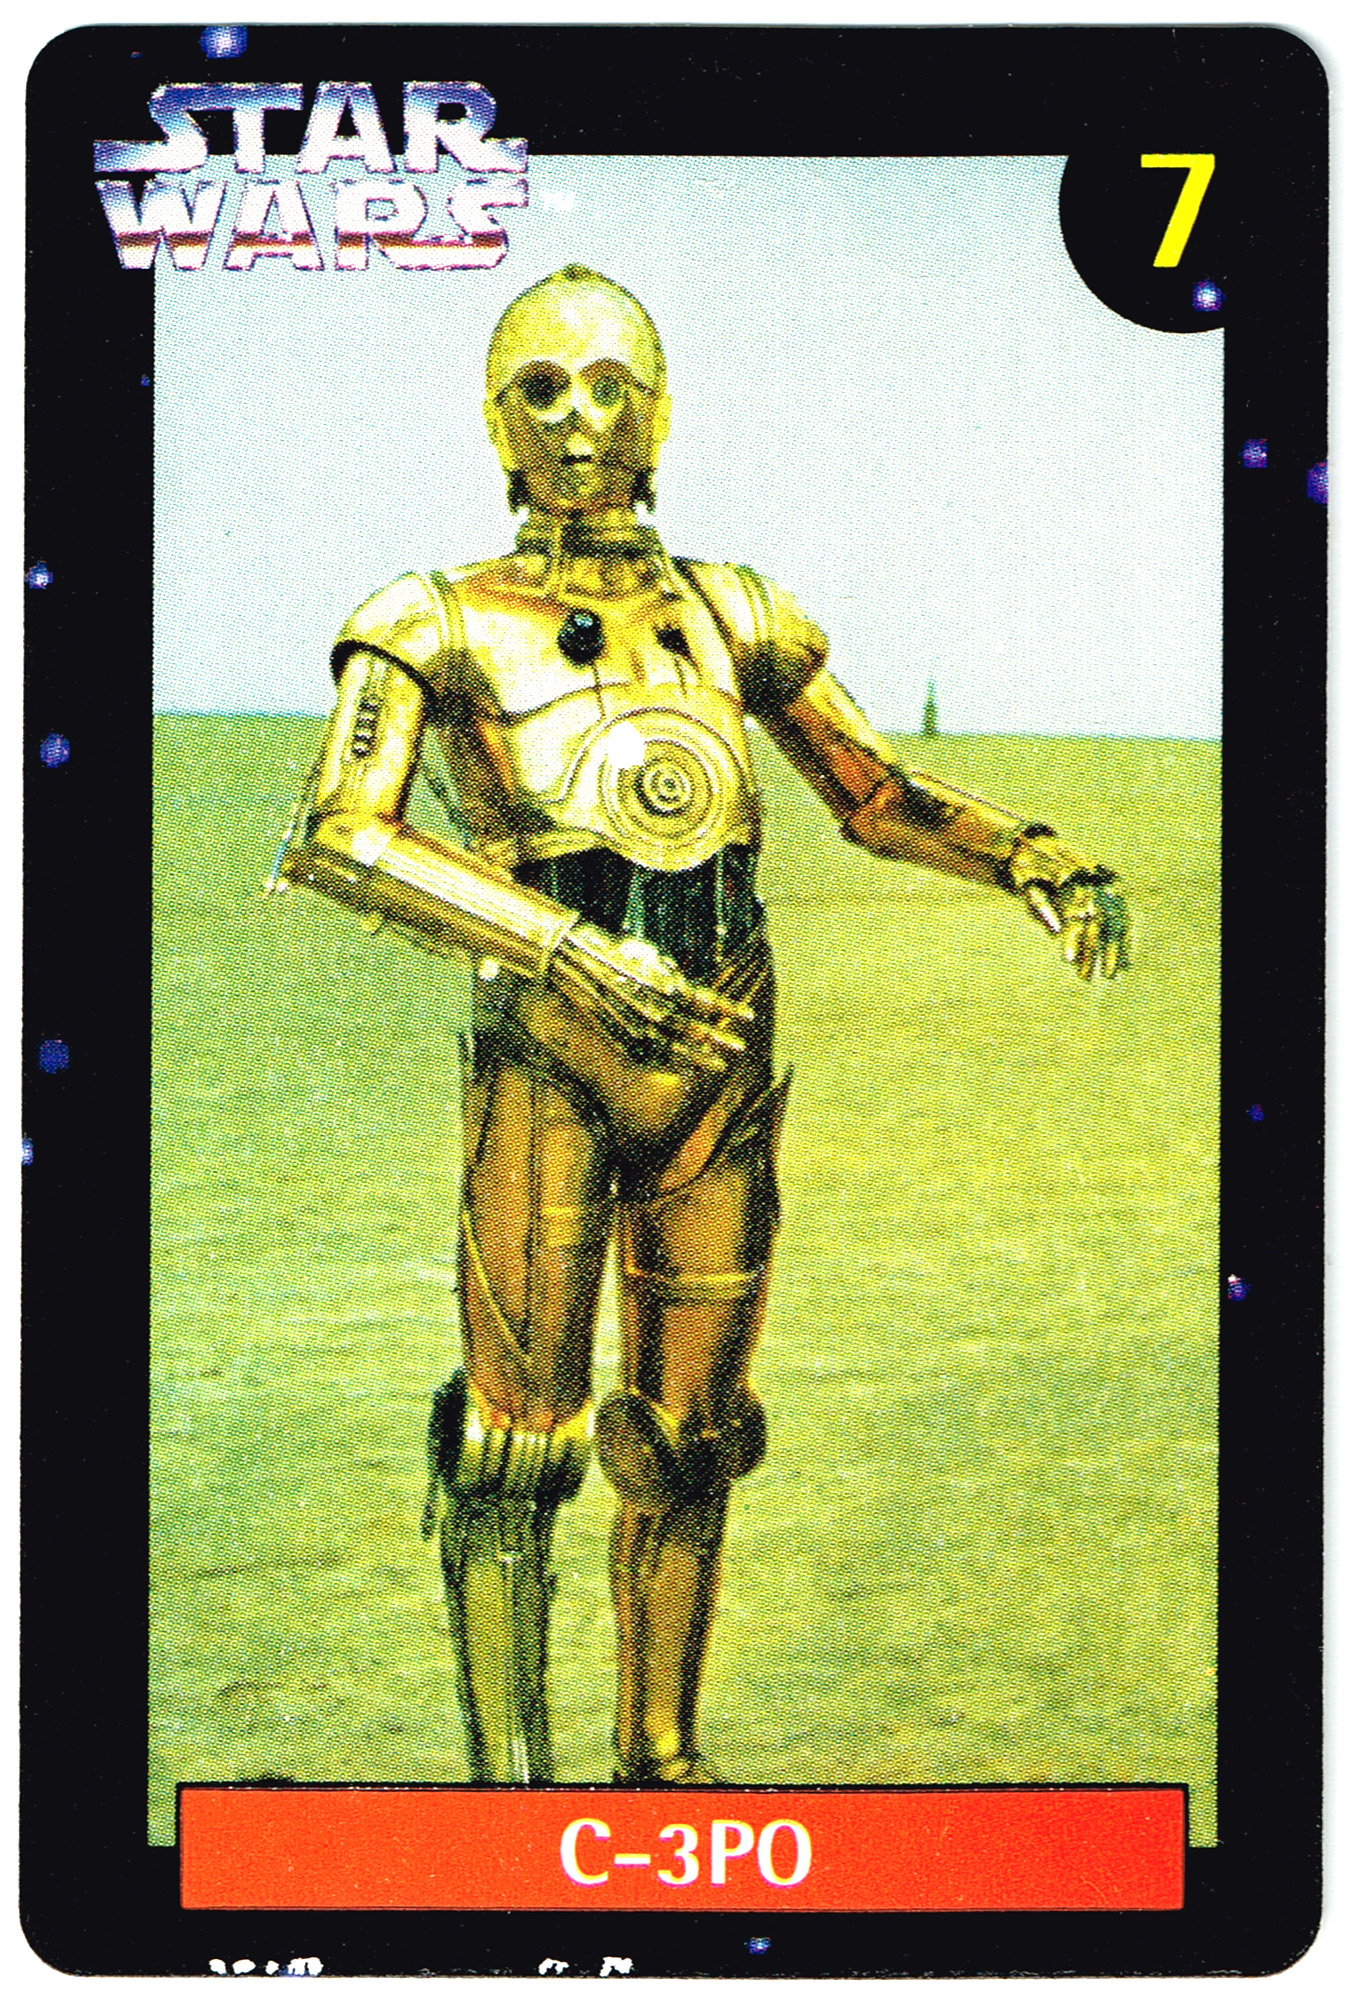 Quality Bakers Card 7 - C-3PO